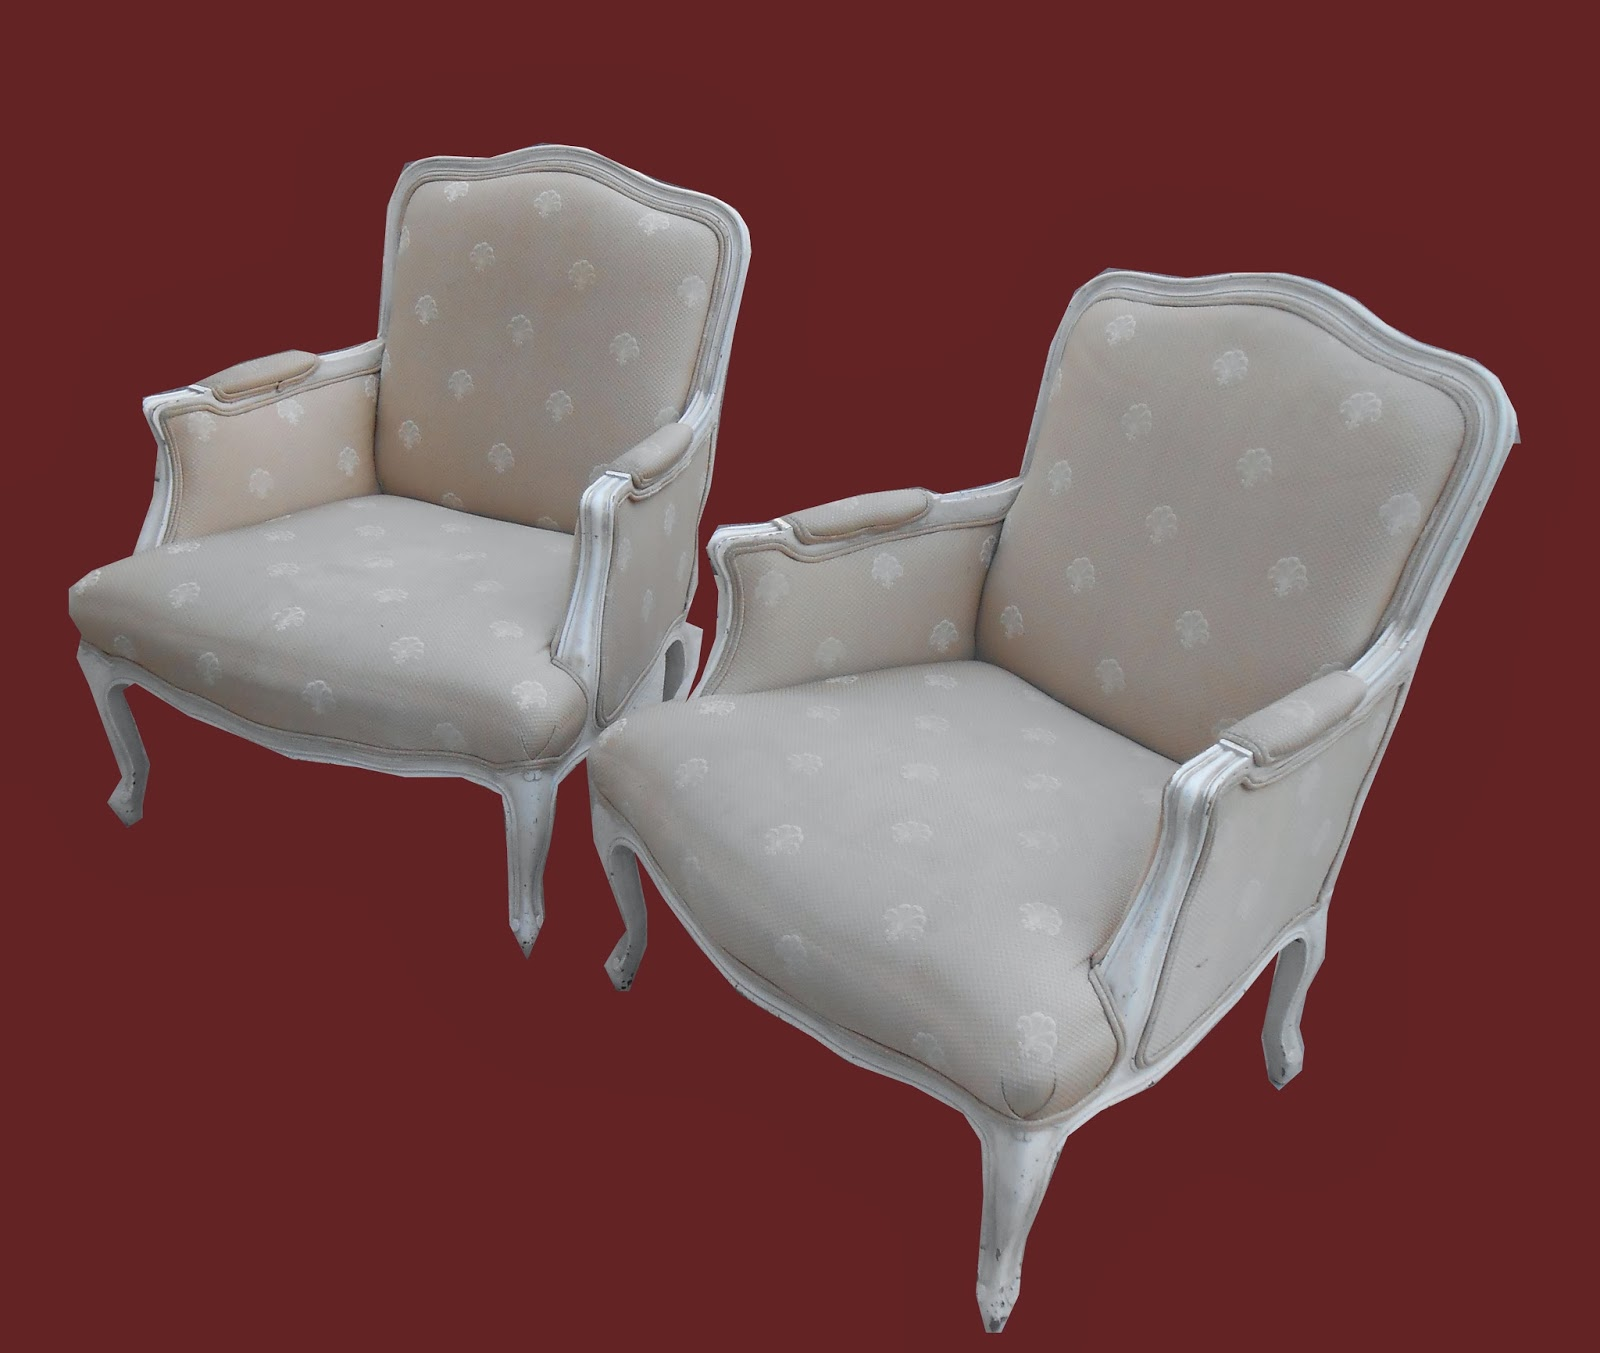 Accent Chairs Sold In Pairs.Uhuru Furniture Collectibles Pair Of Louis Xiv Accent Chairs Sold